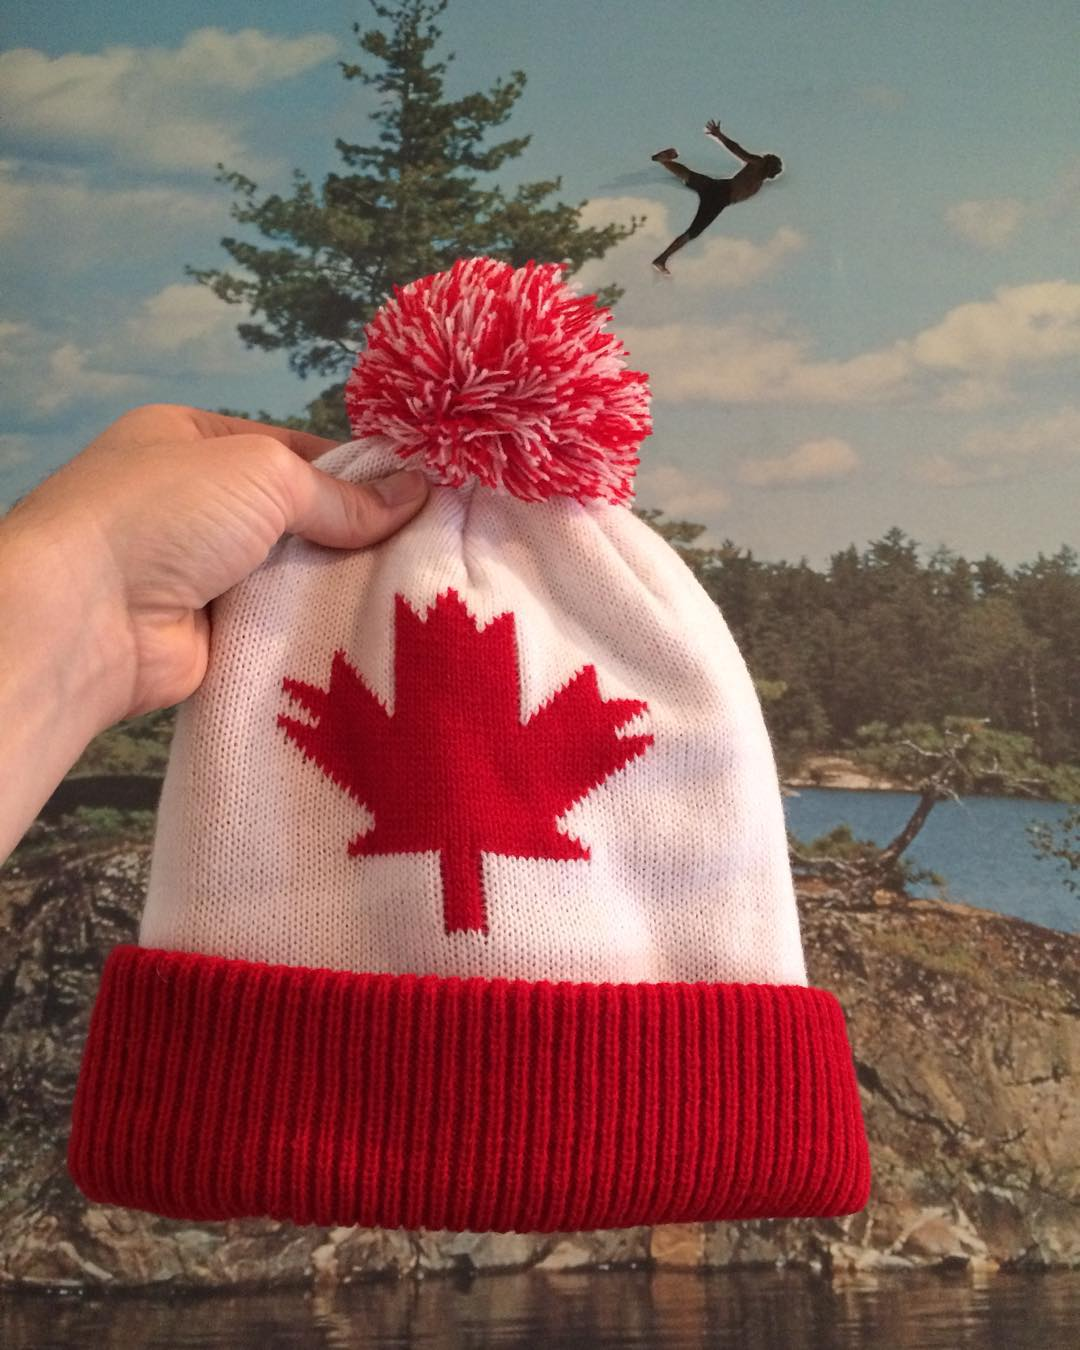 We missed doing the #coalheadwear Weekend Hat Pick so here's another one for you. This #toque (not a beanie) is part of the Nations series and can be worn by anyone (not just Canadians). Available now as part of our #FW15 collection!